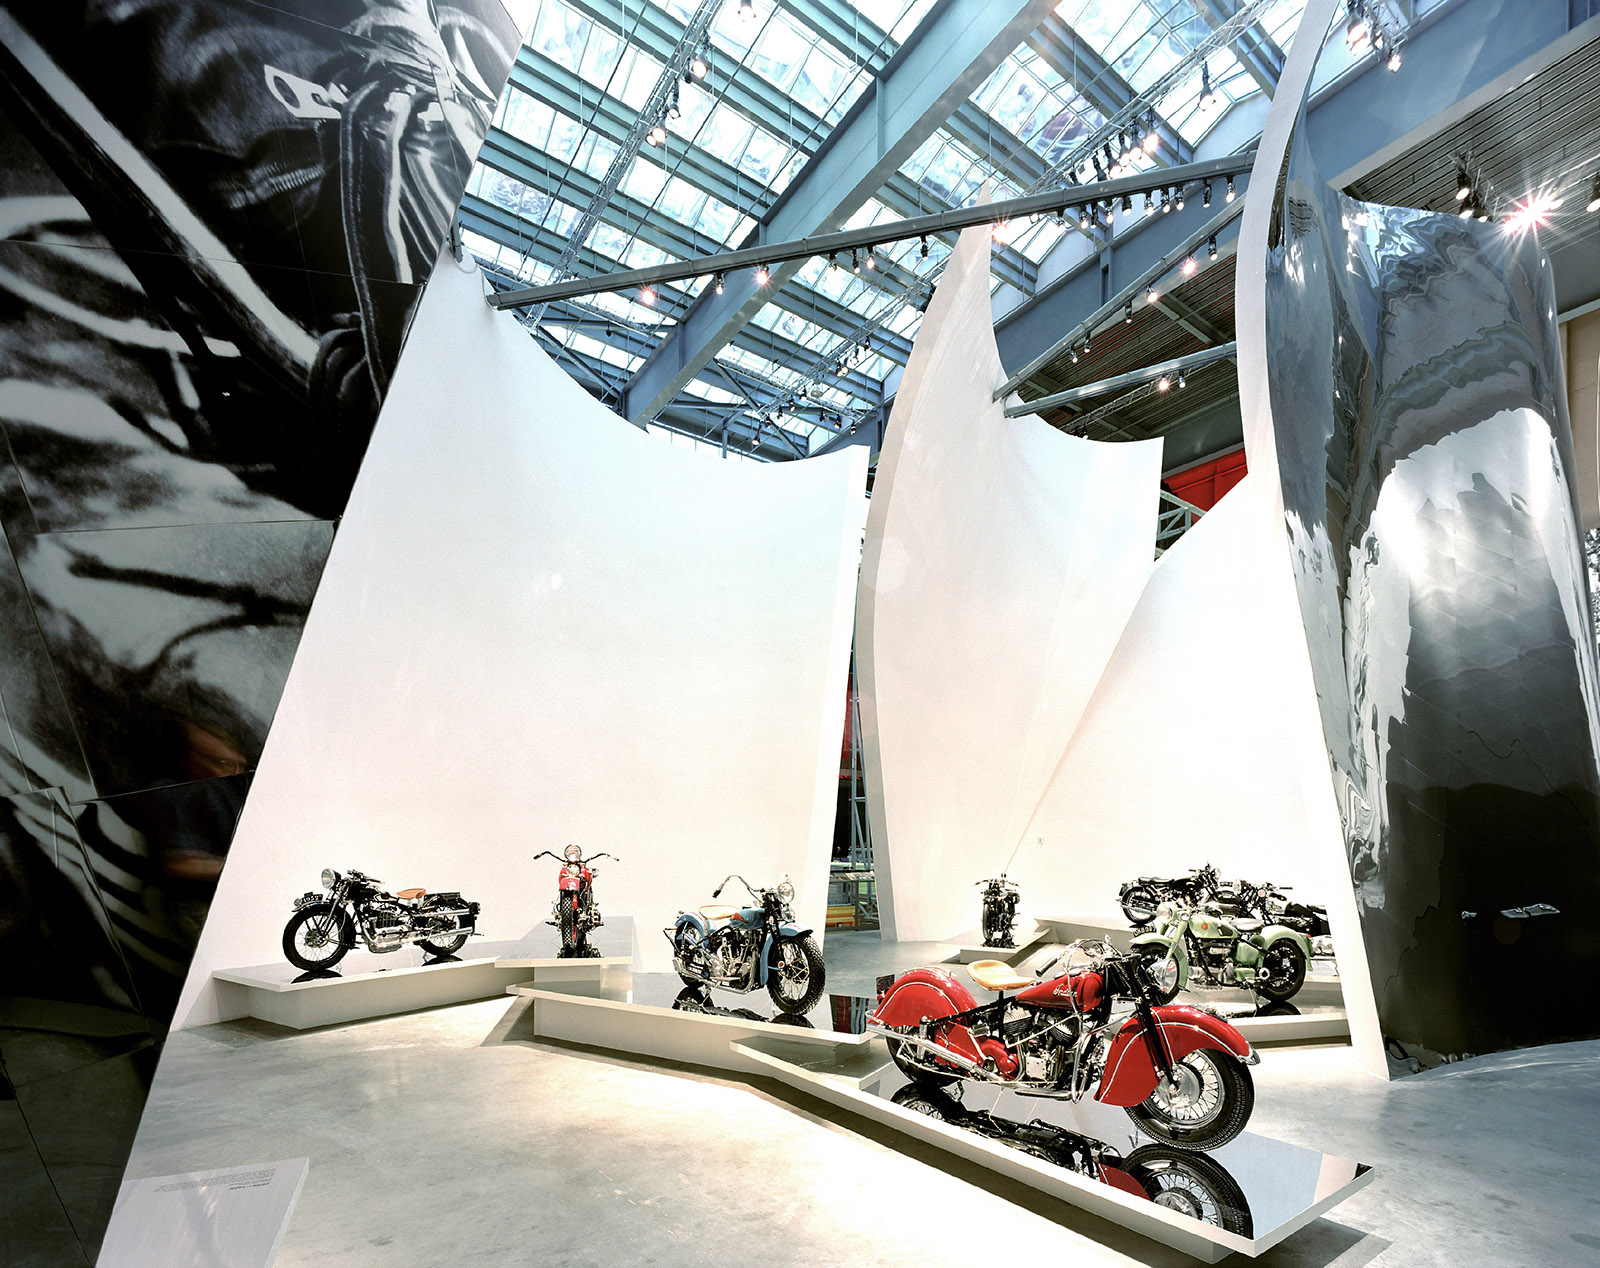 …are displayed thepieces in the motorcycle collection.